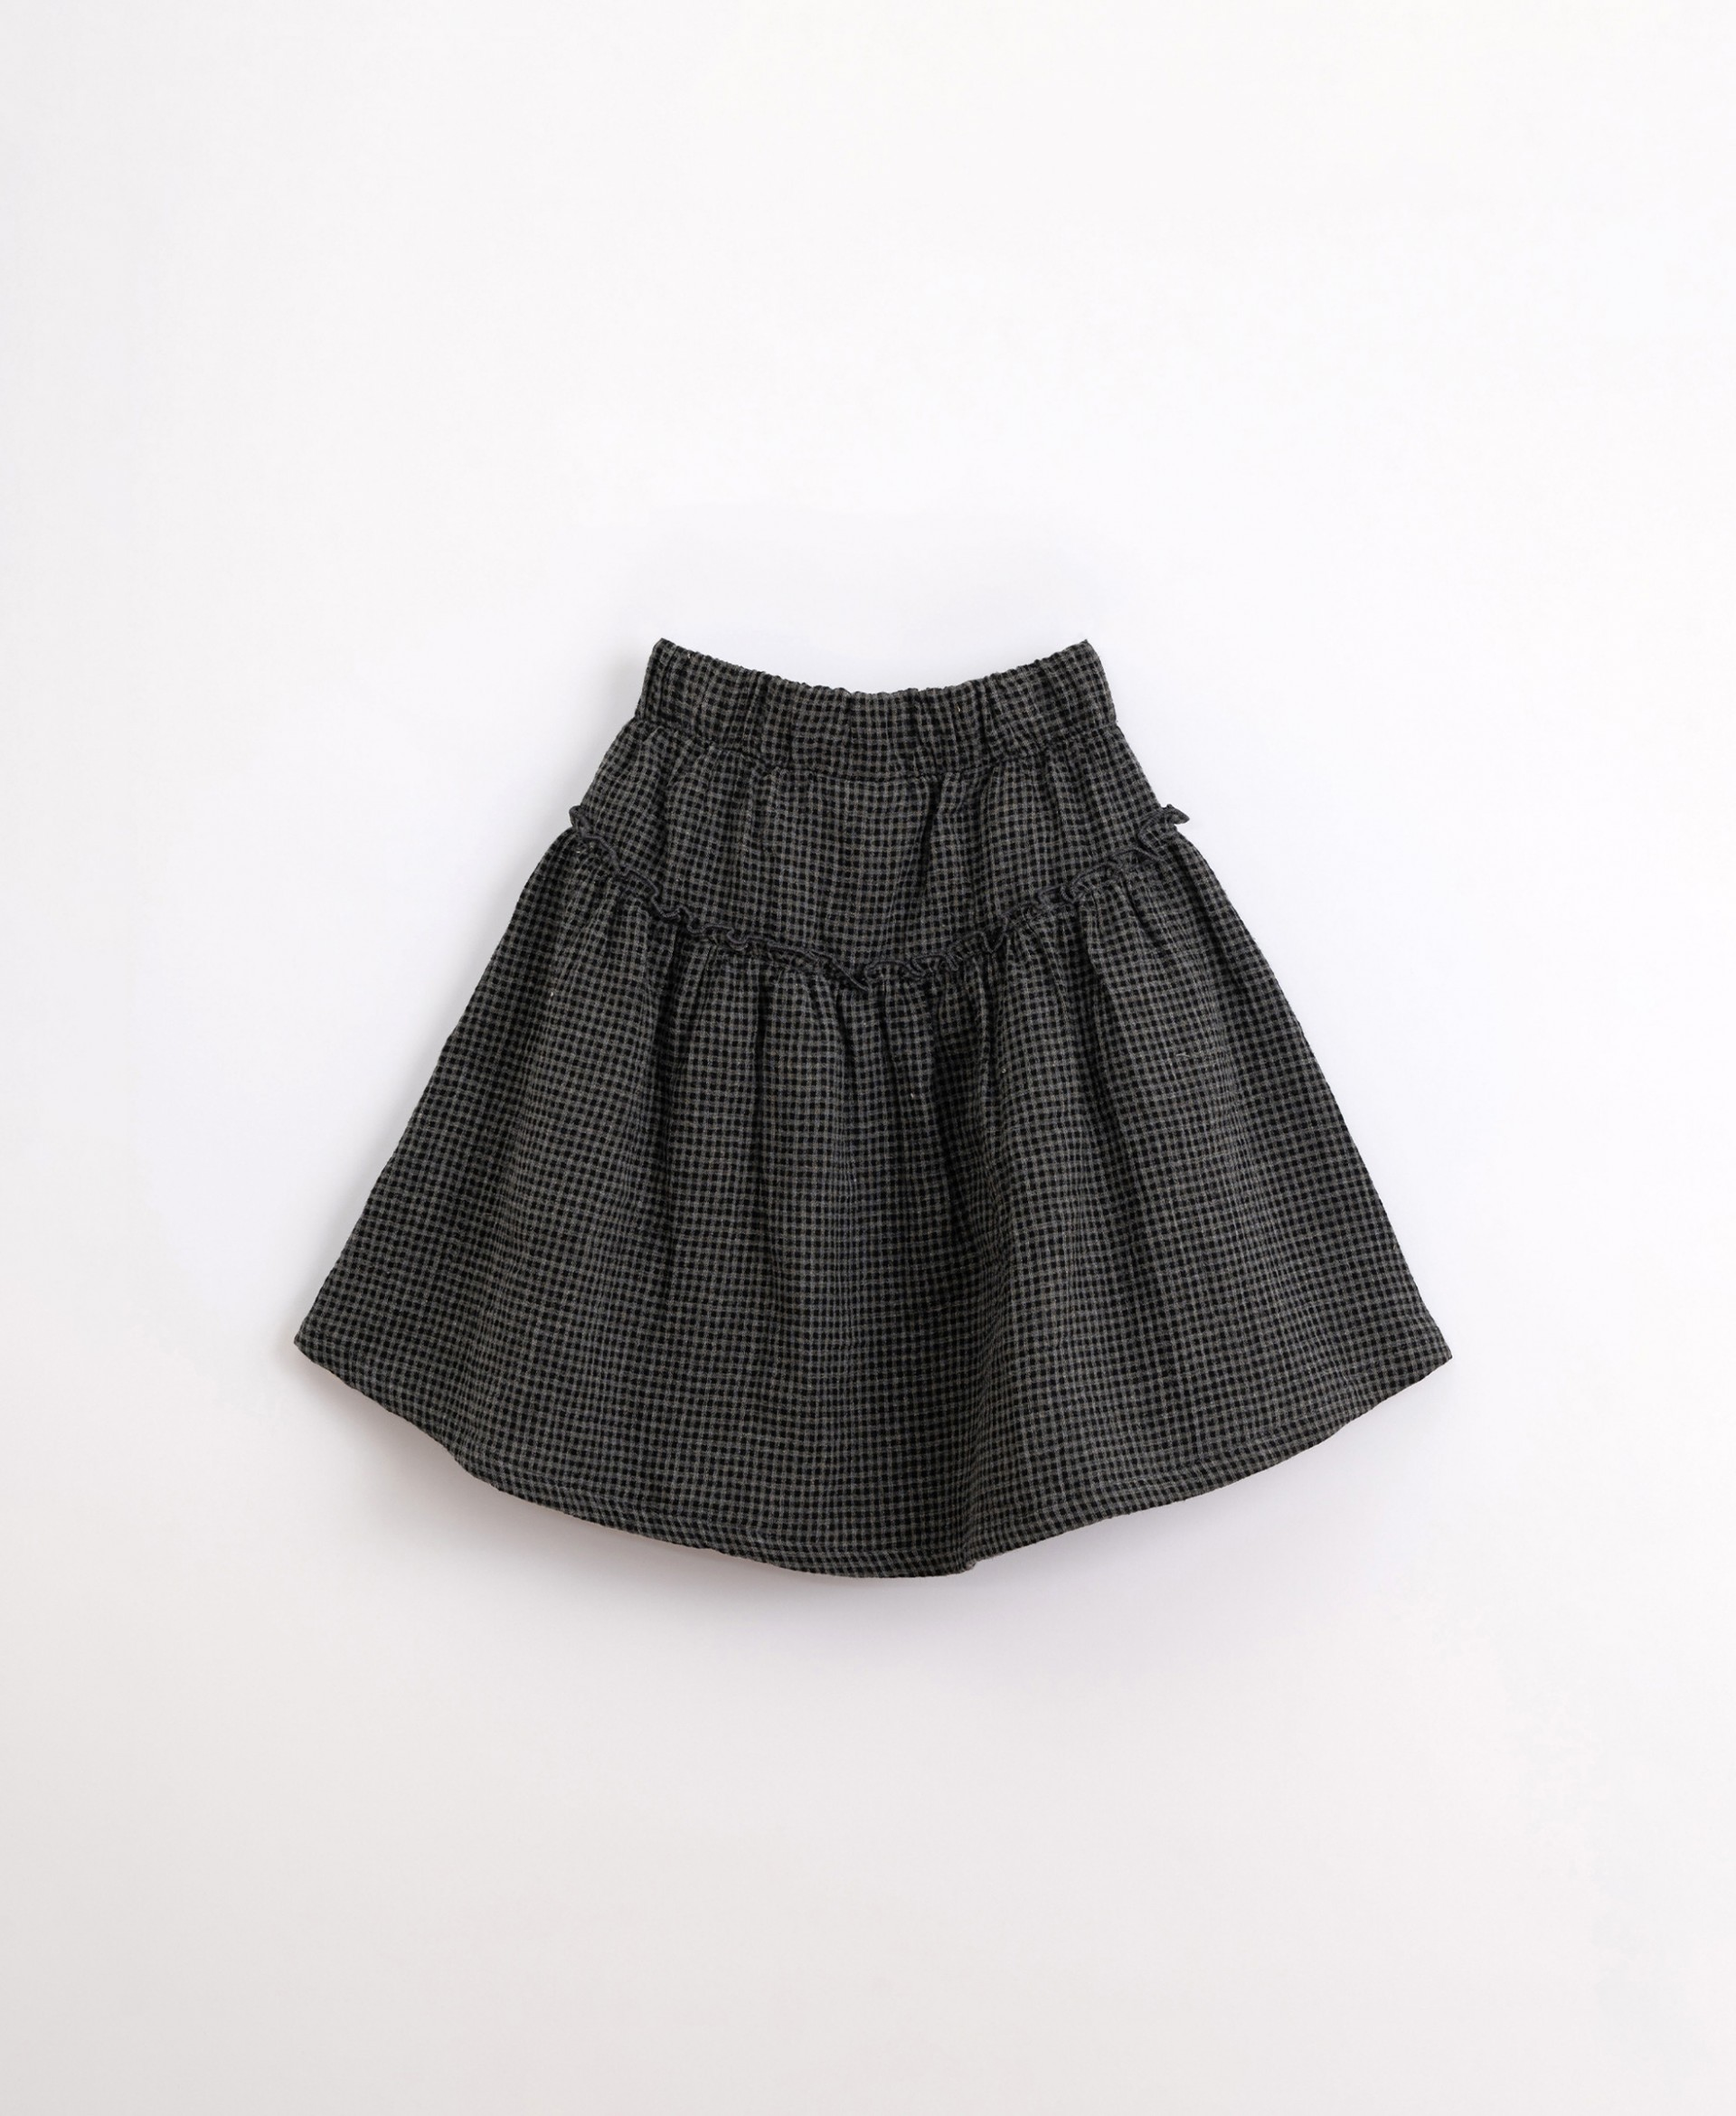 Cotton skirt with vichy pattern | Illustration